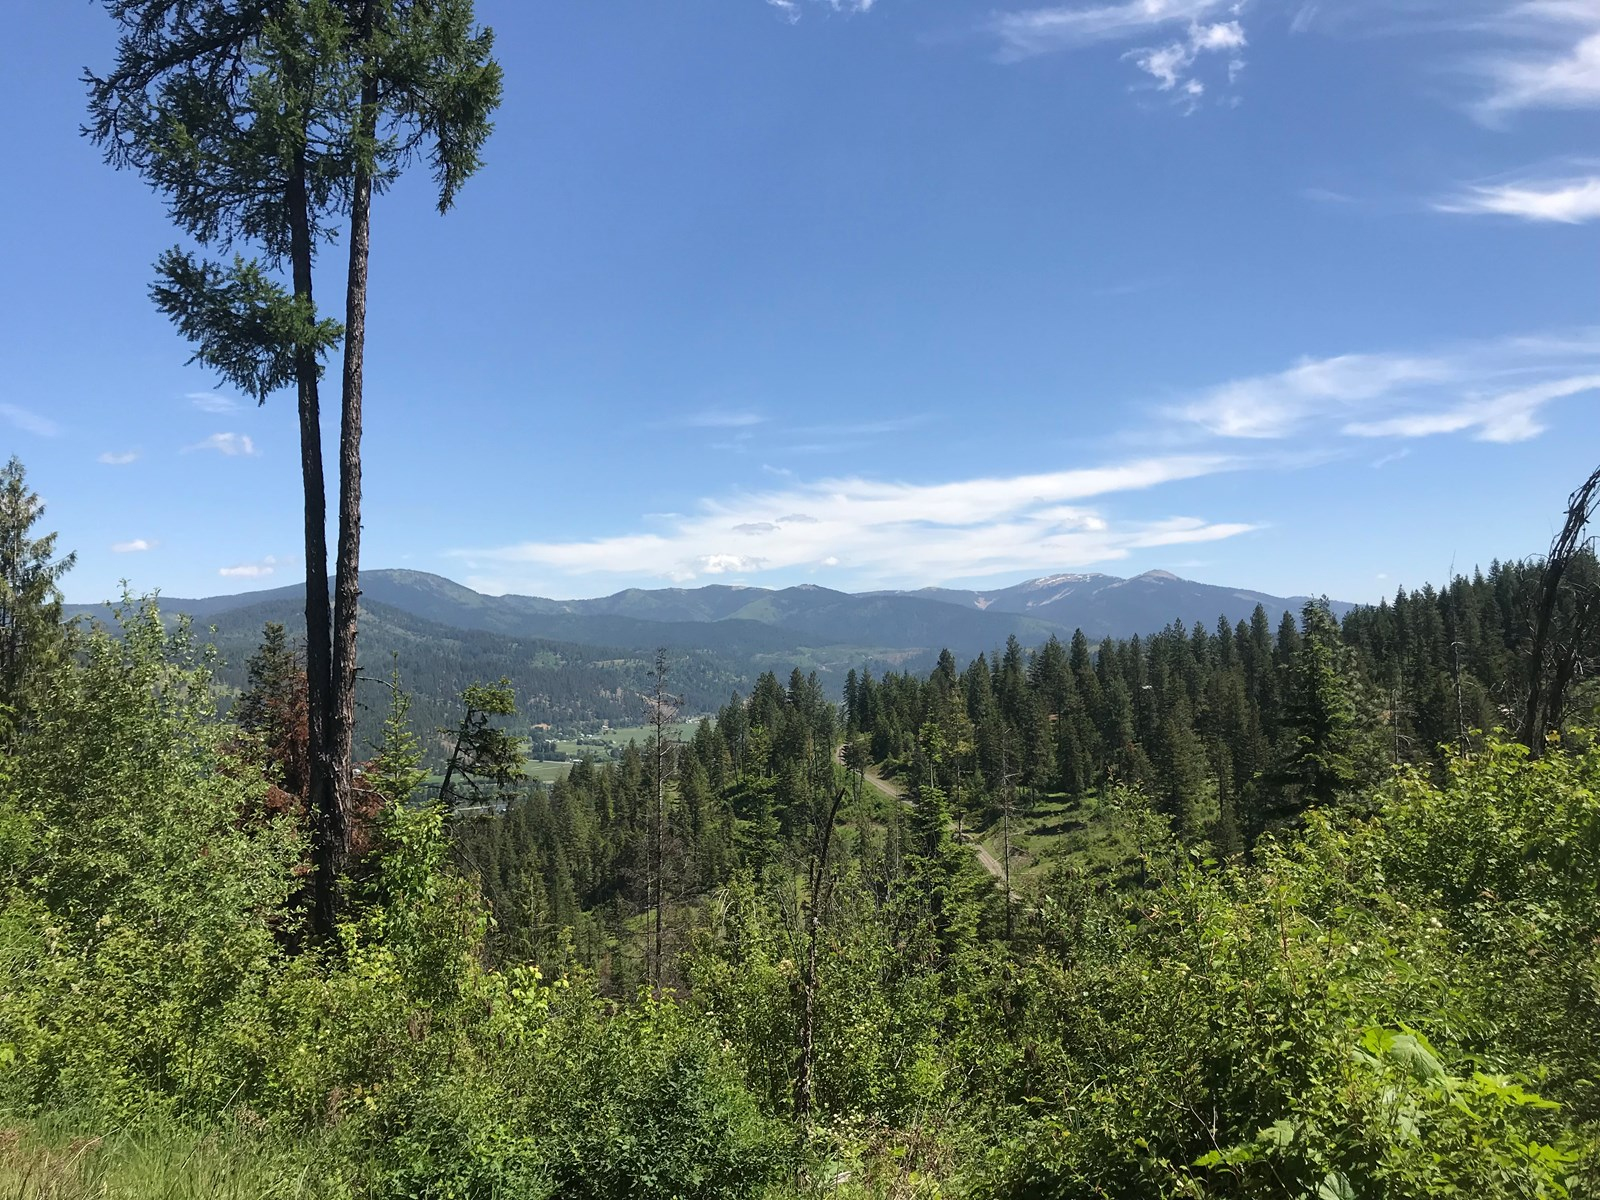 NORTH IDAHO LAND FOR SALE OVER 200 ACRES IN ST. MARIES